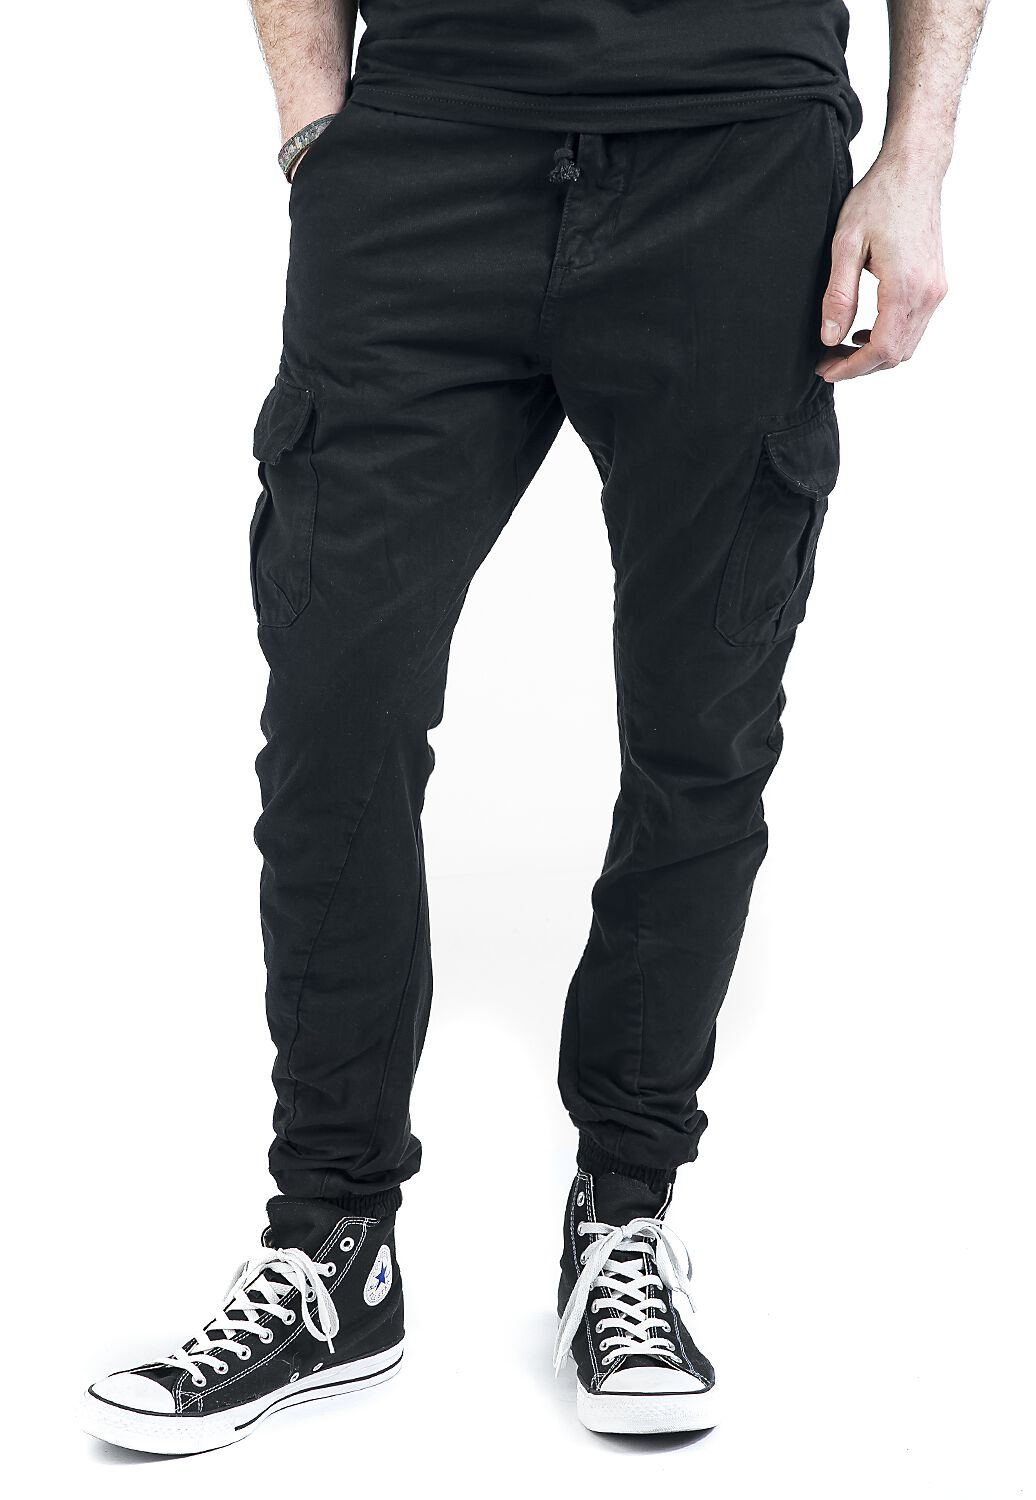 asteroid joggers buynow - photo #3